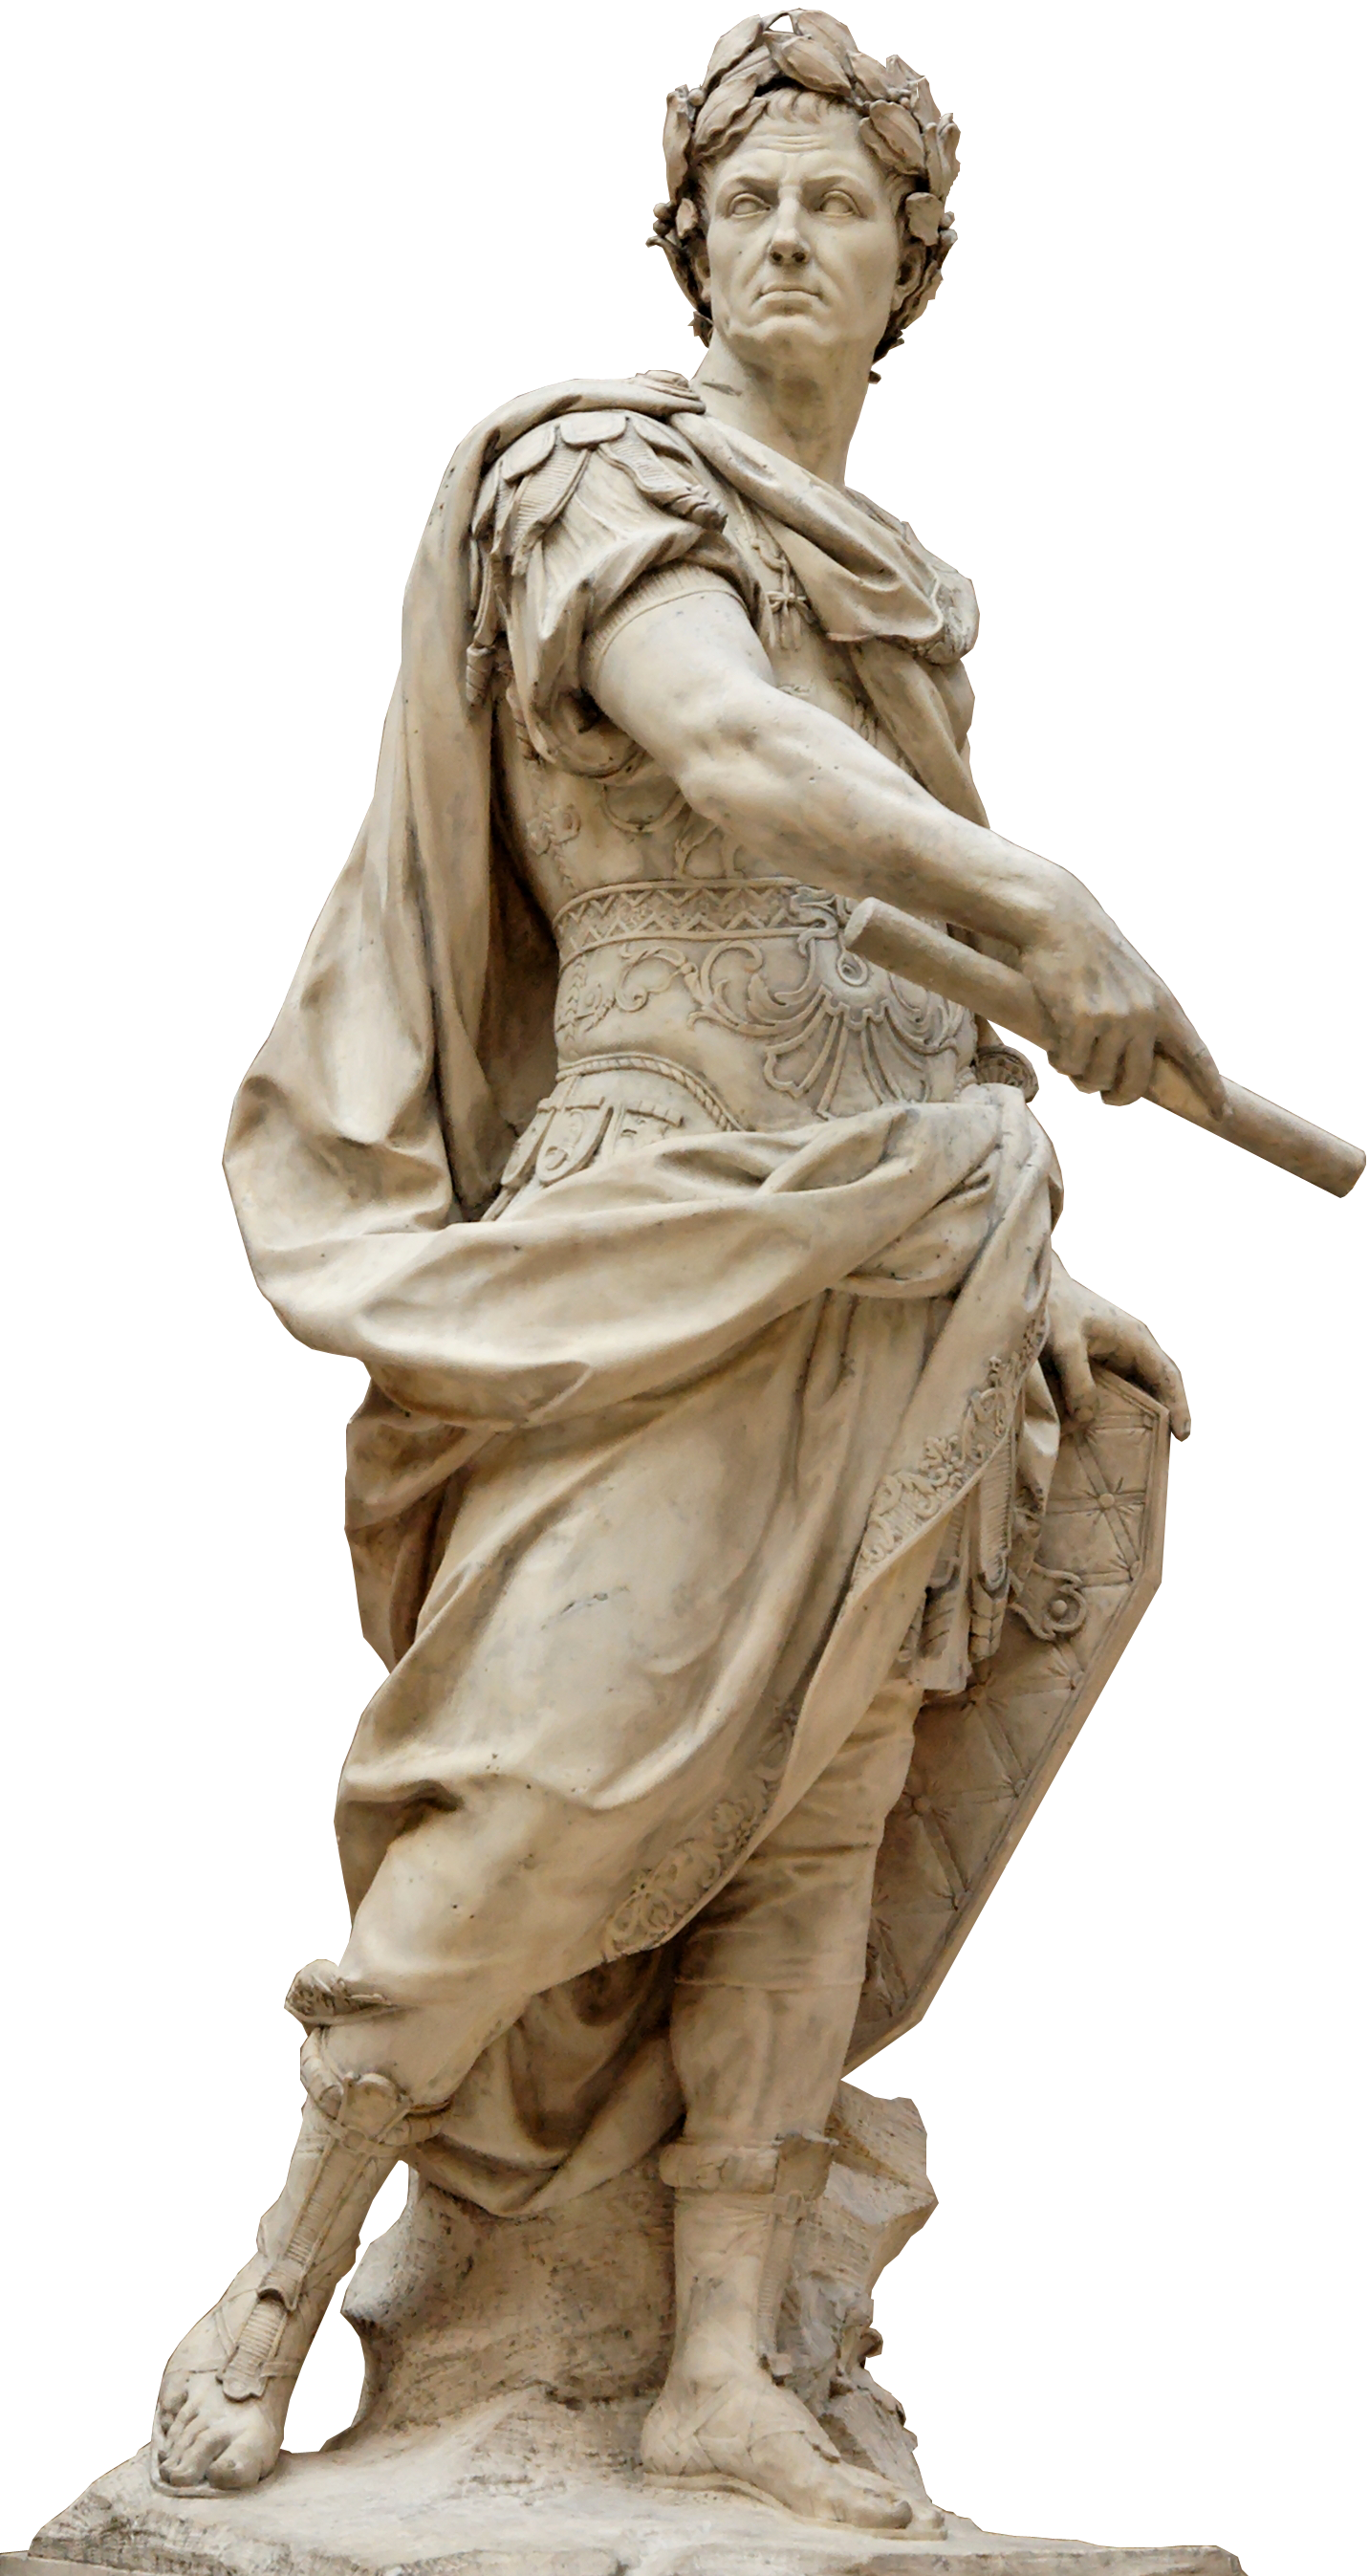 Aesthetic roman statue png. How sycophants made one